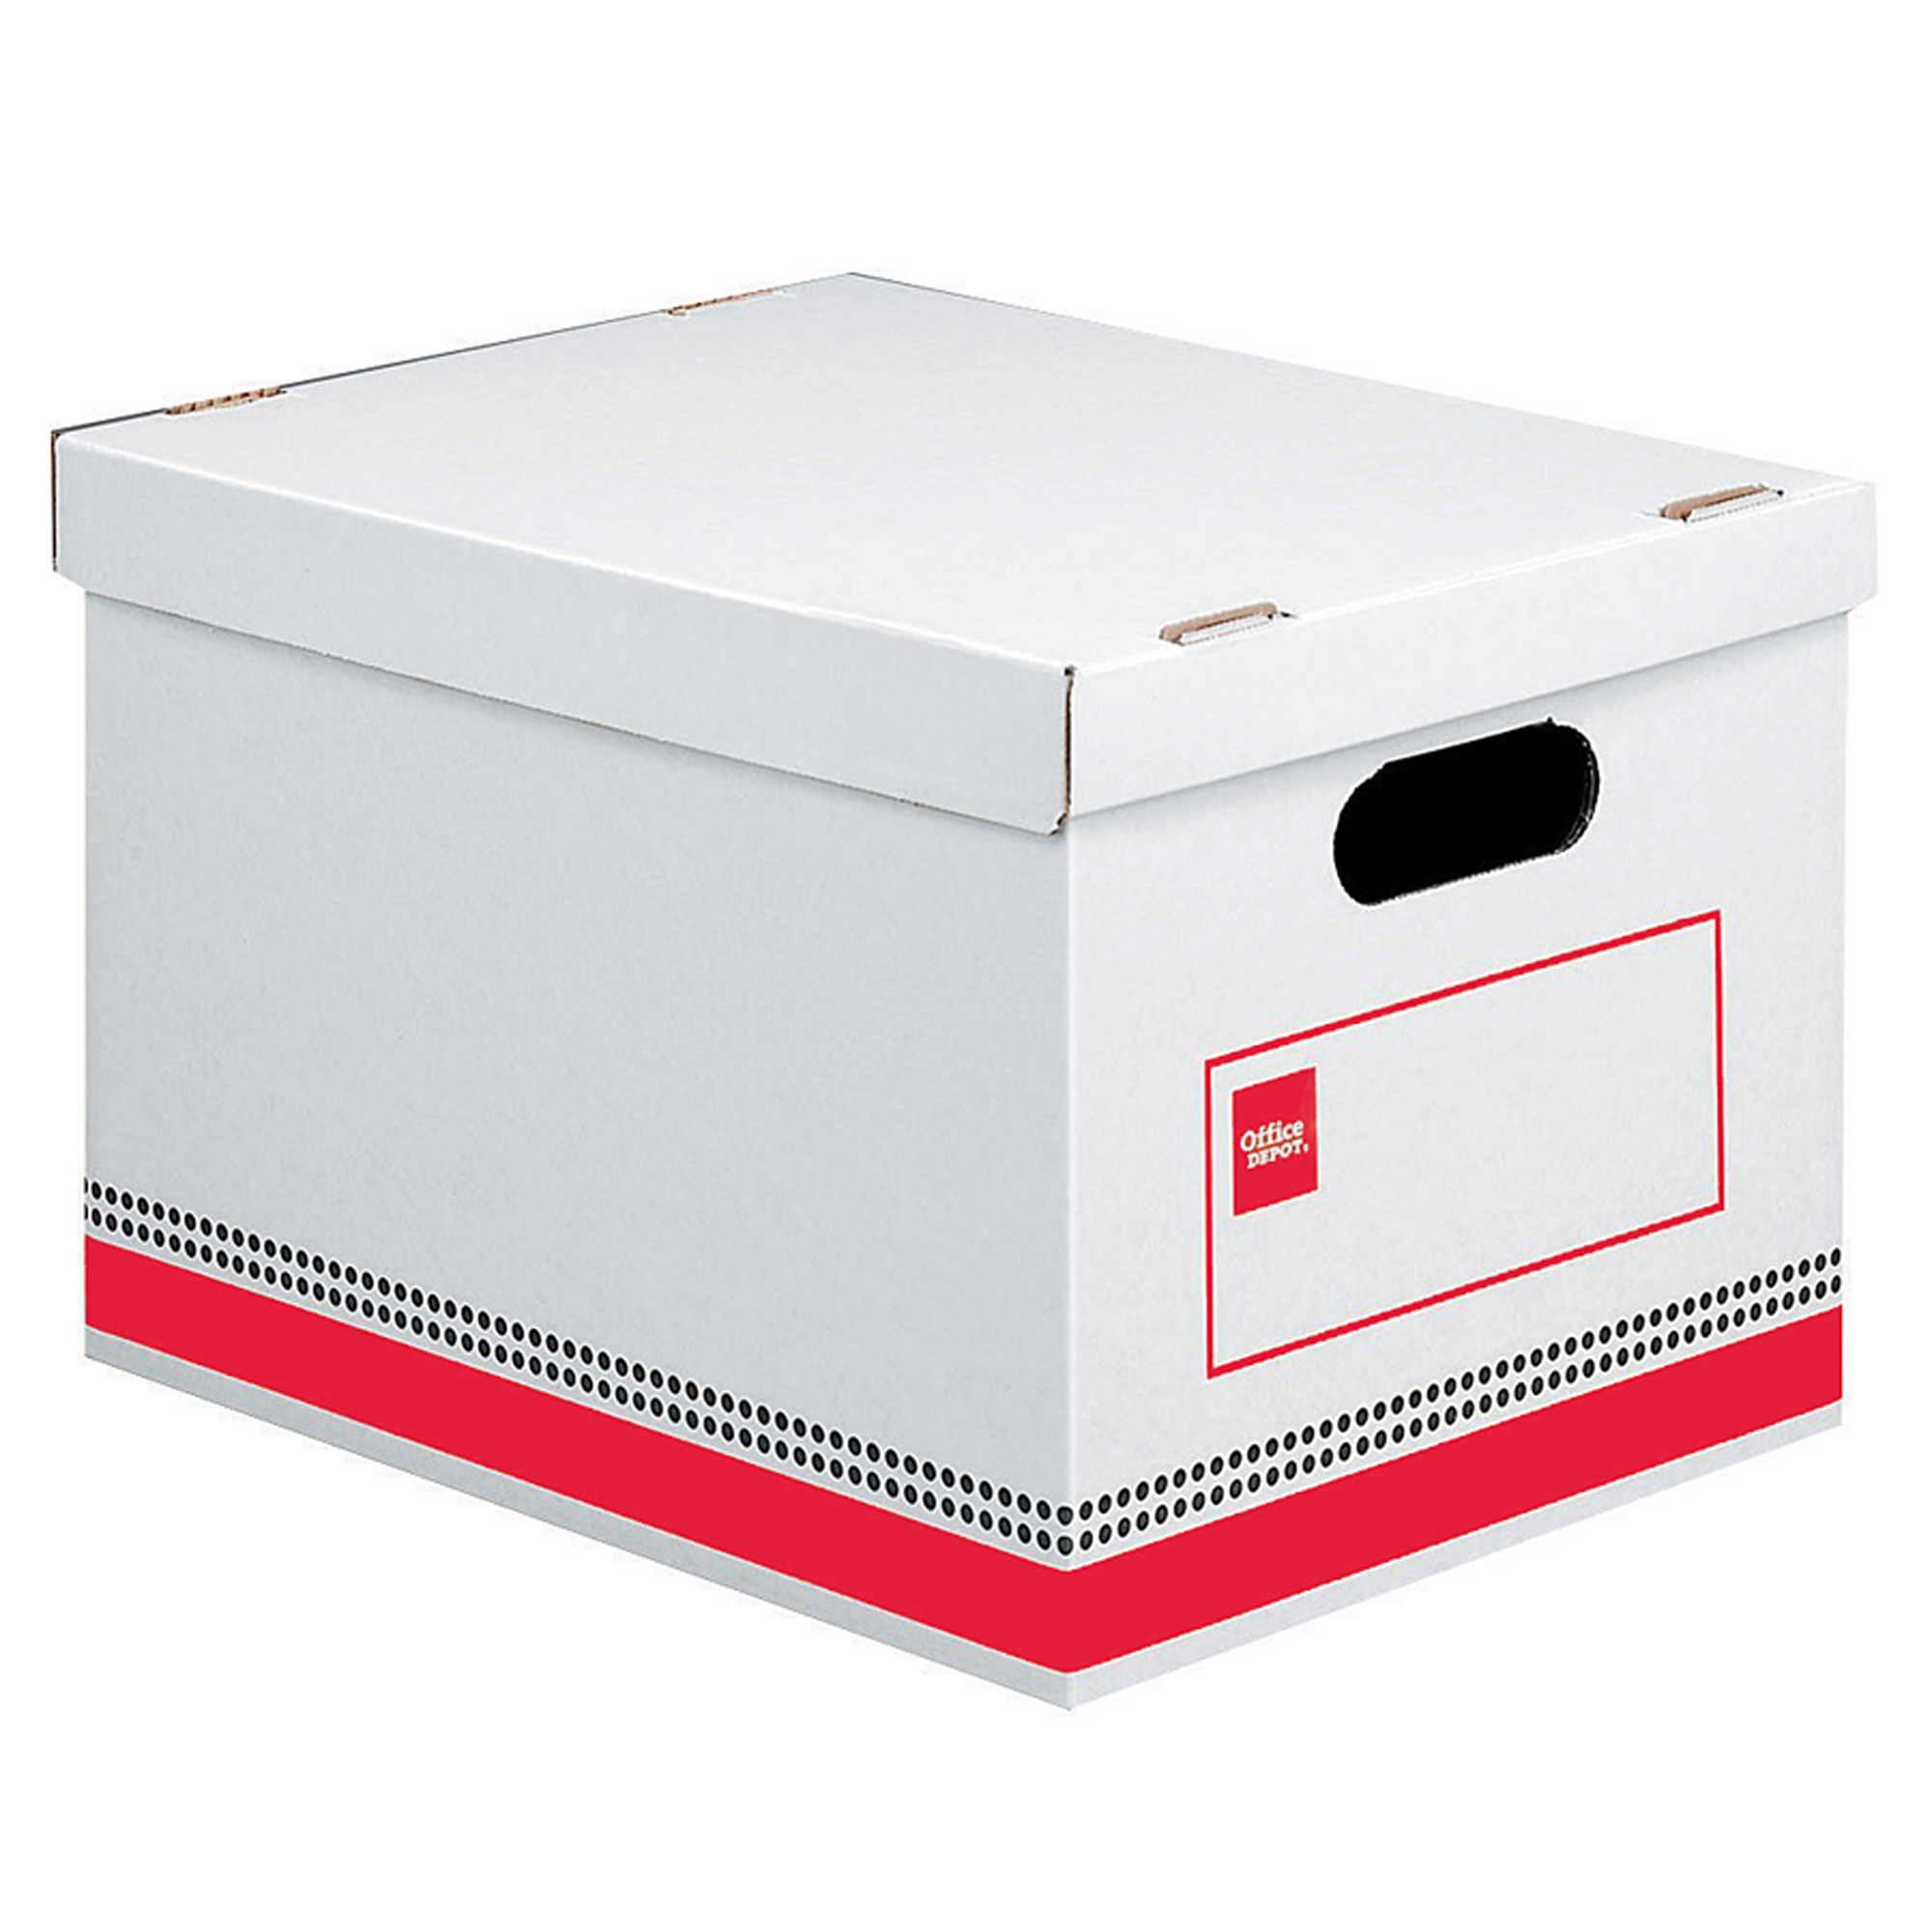 "Office Depot® Brand Economy Storage Boxes, 15"" x 12"" x 10"", Letter/Legal Size, 60% Recycled, Red/White, Pack Of 12"